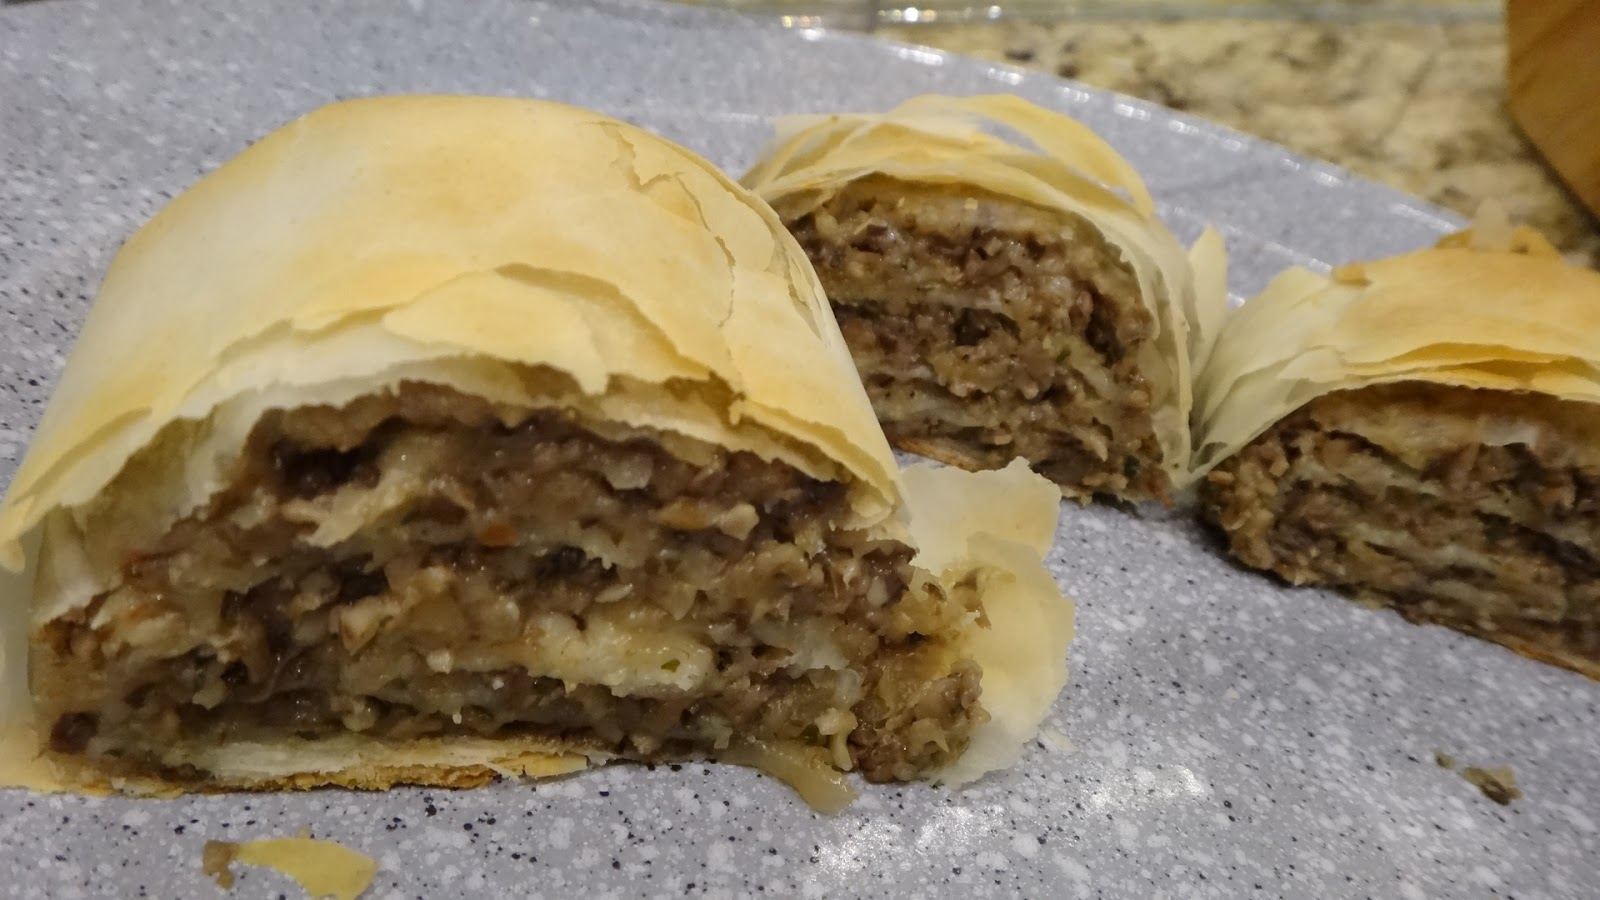 want to cook that: Mushroom Strudel